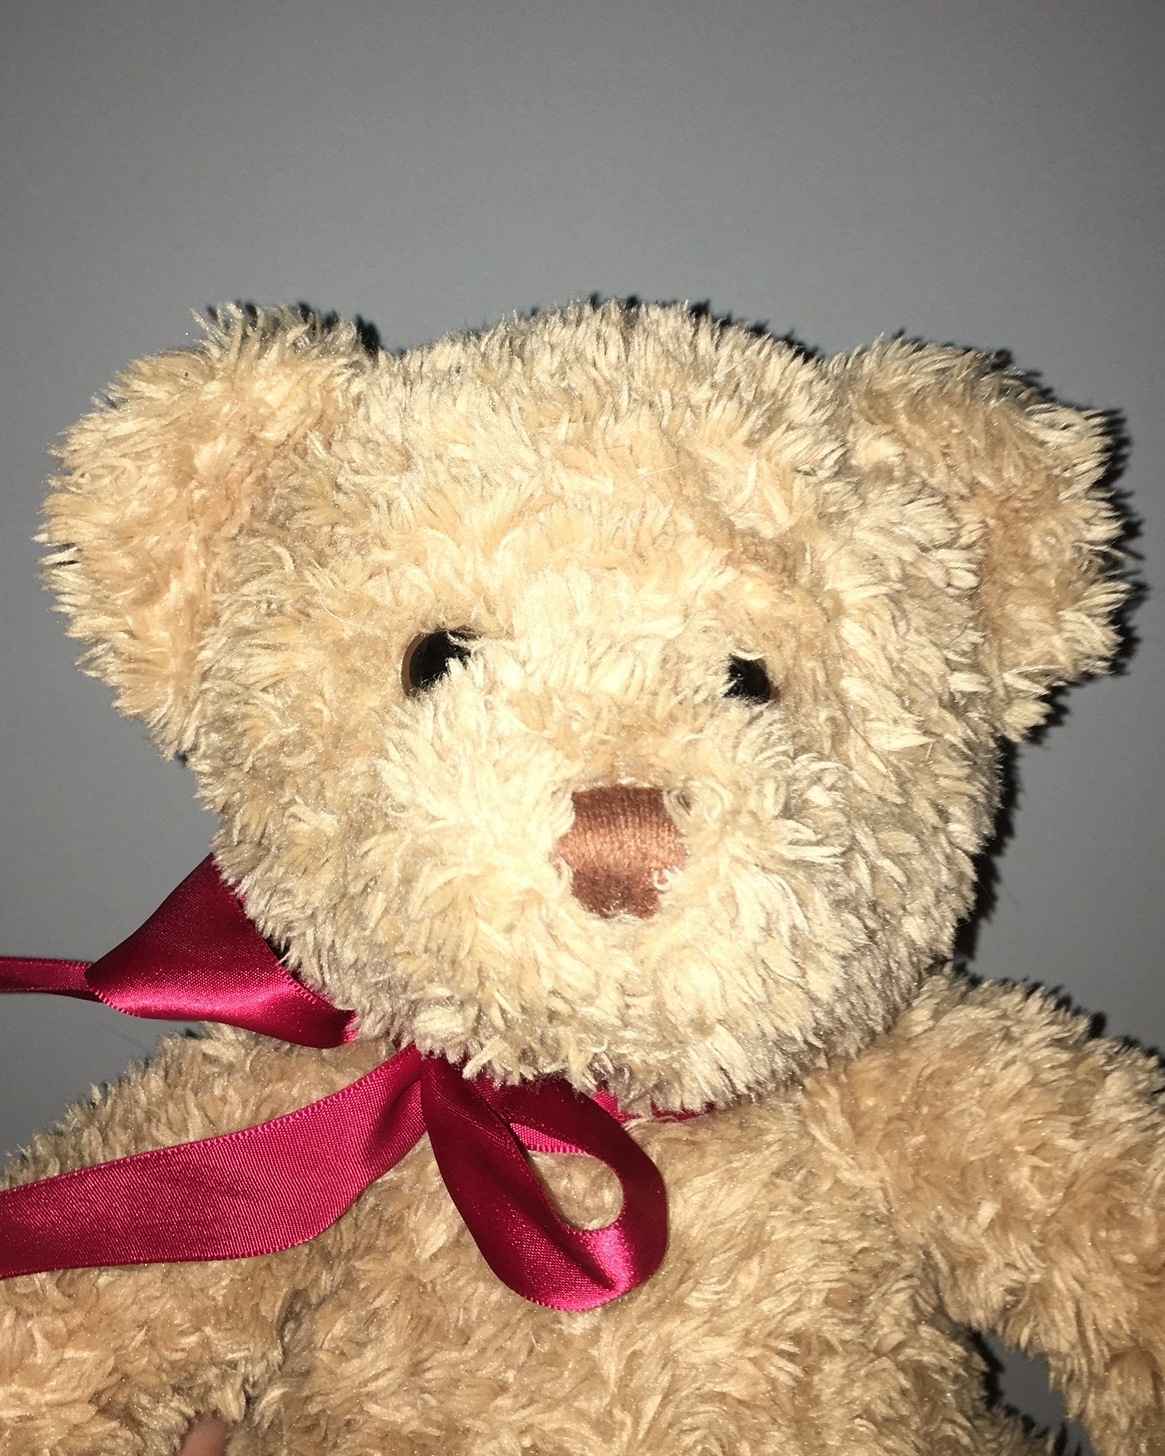 A photo of a teddy bear with flash